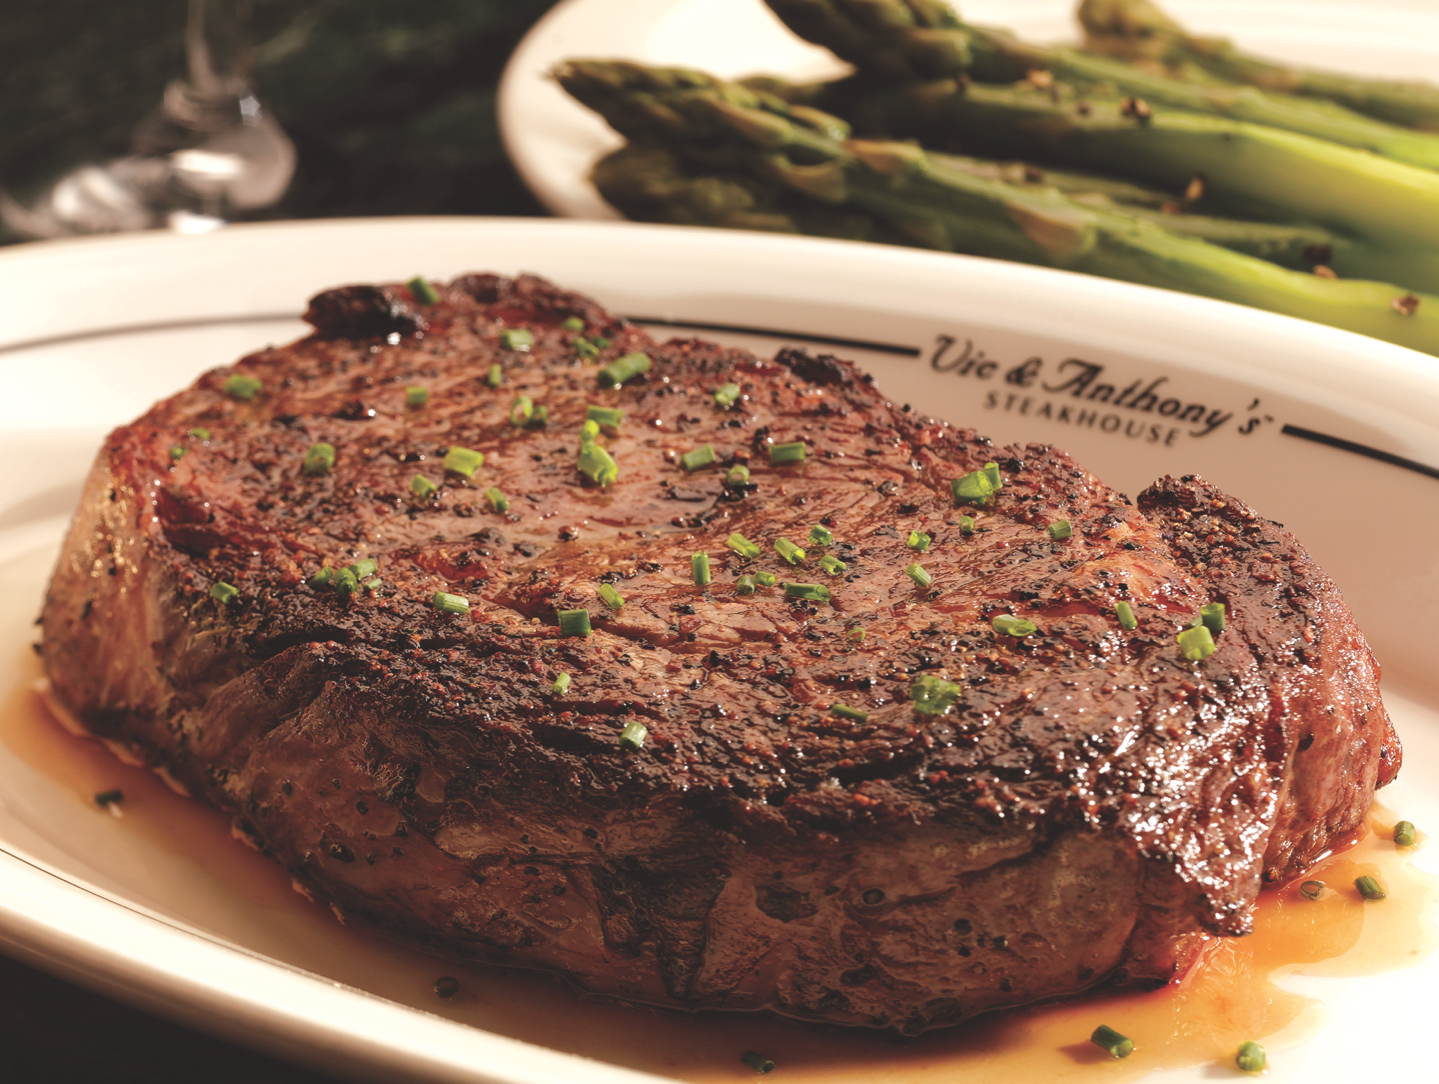 Come enjoy a juicy 16 oz. Prime Ribeye Steak seasoned to your liking ...